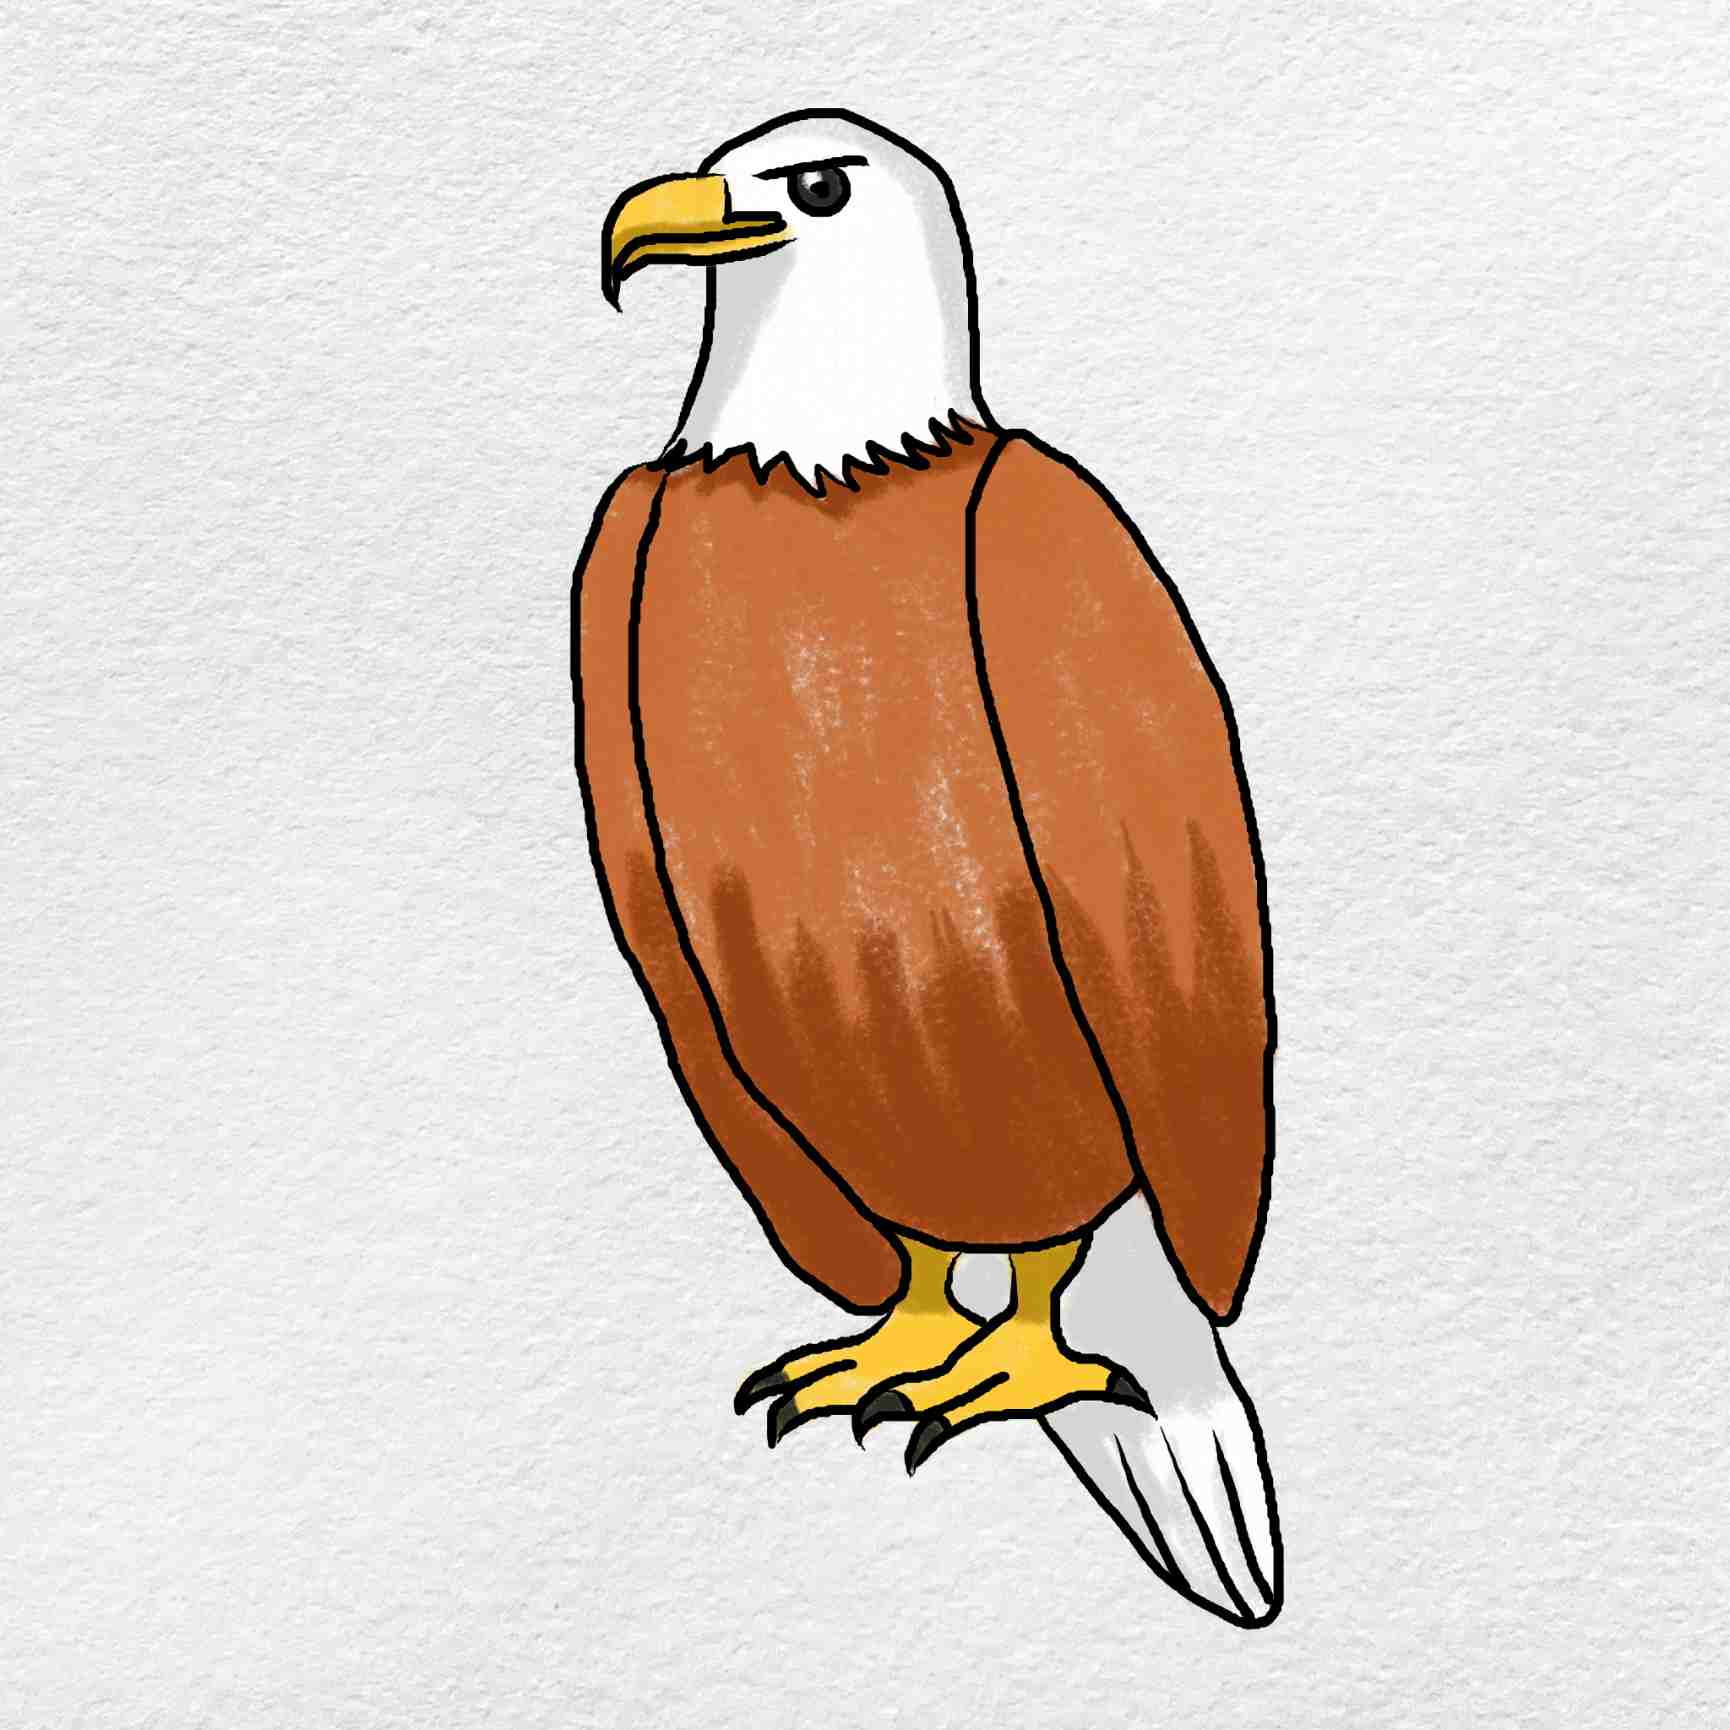 How To Draw An Eagle Easy: Step 9